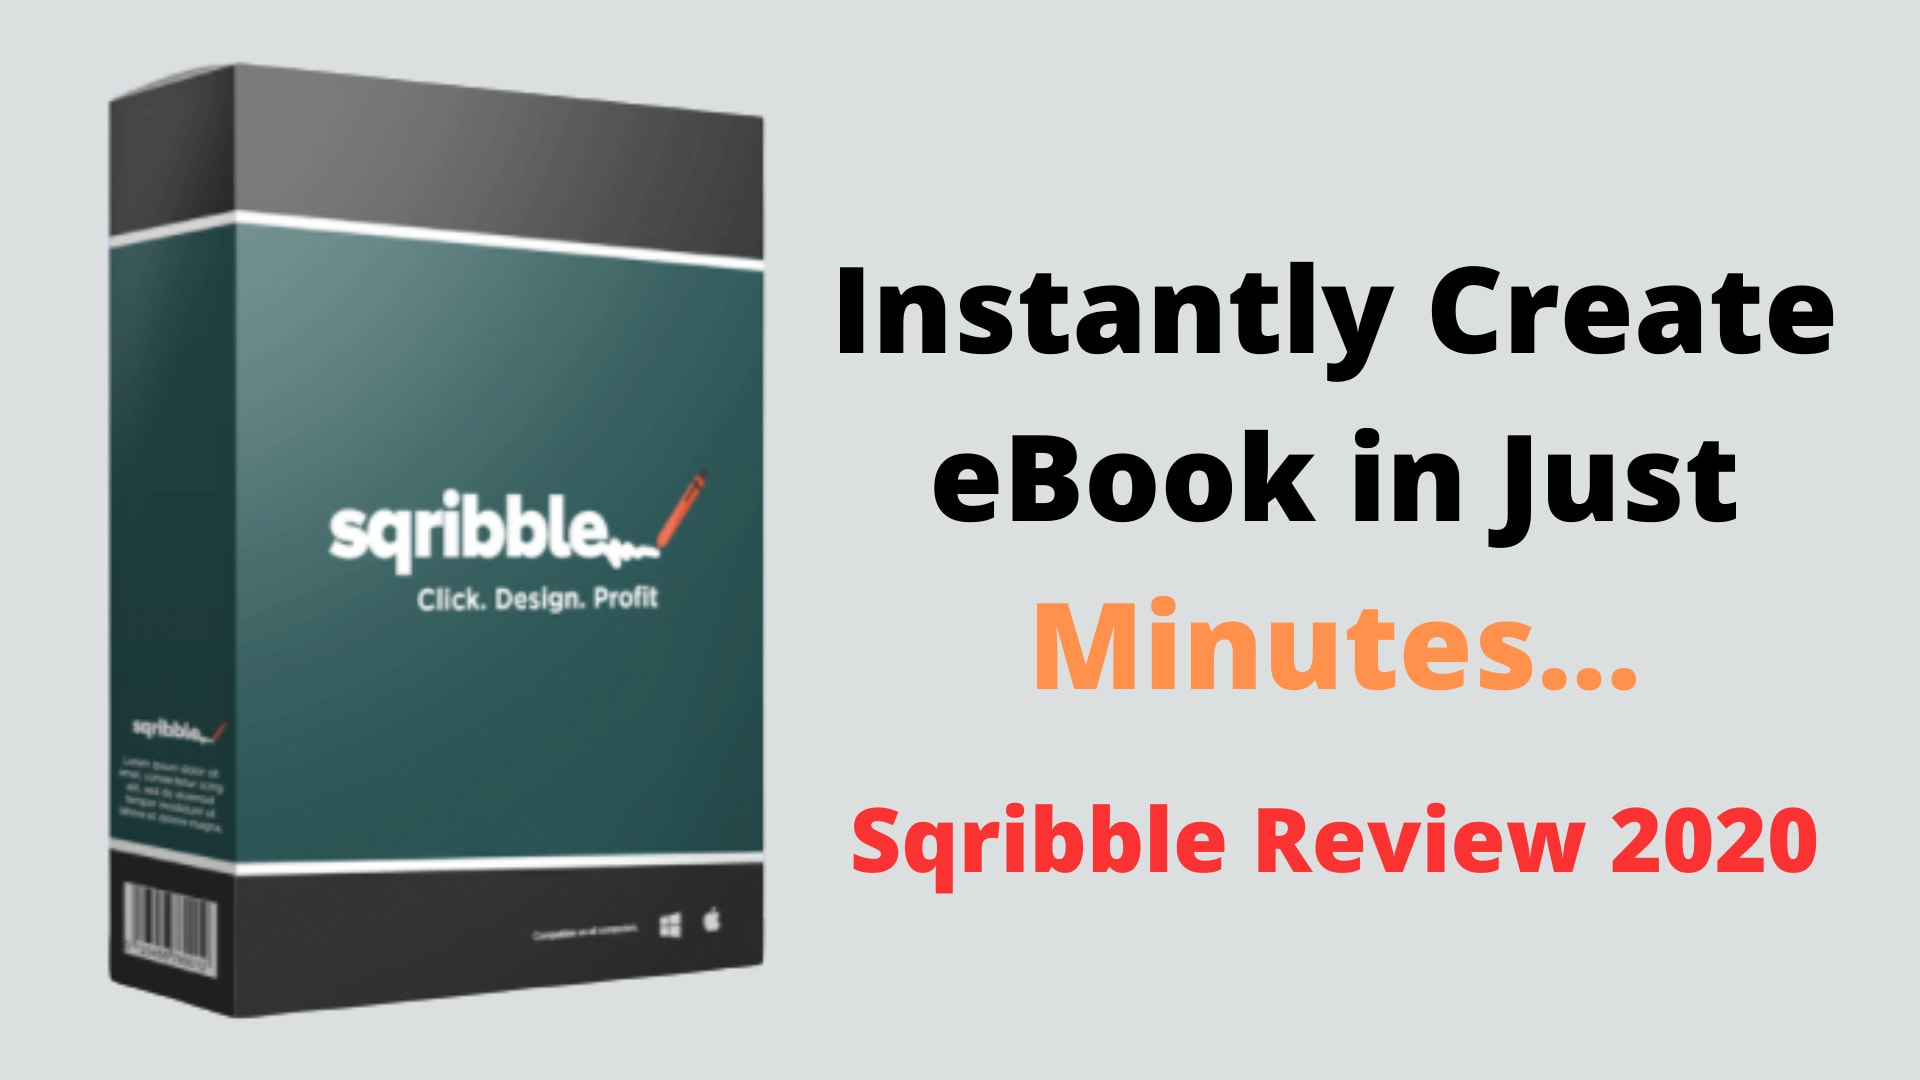 Sqribble Review 2020 - Sqribble Ebook Software: Honest Sqribble Review 2020